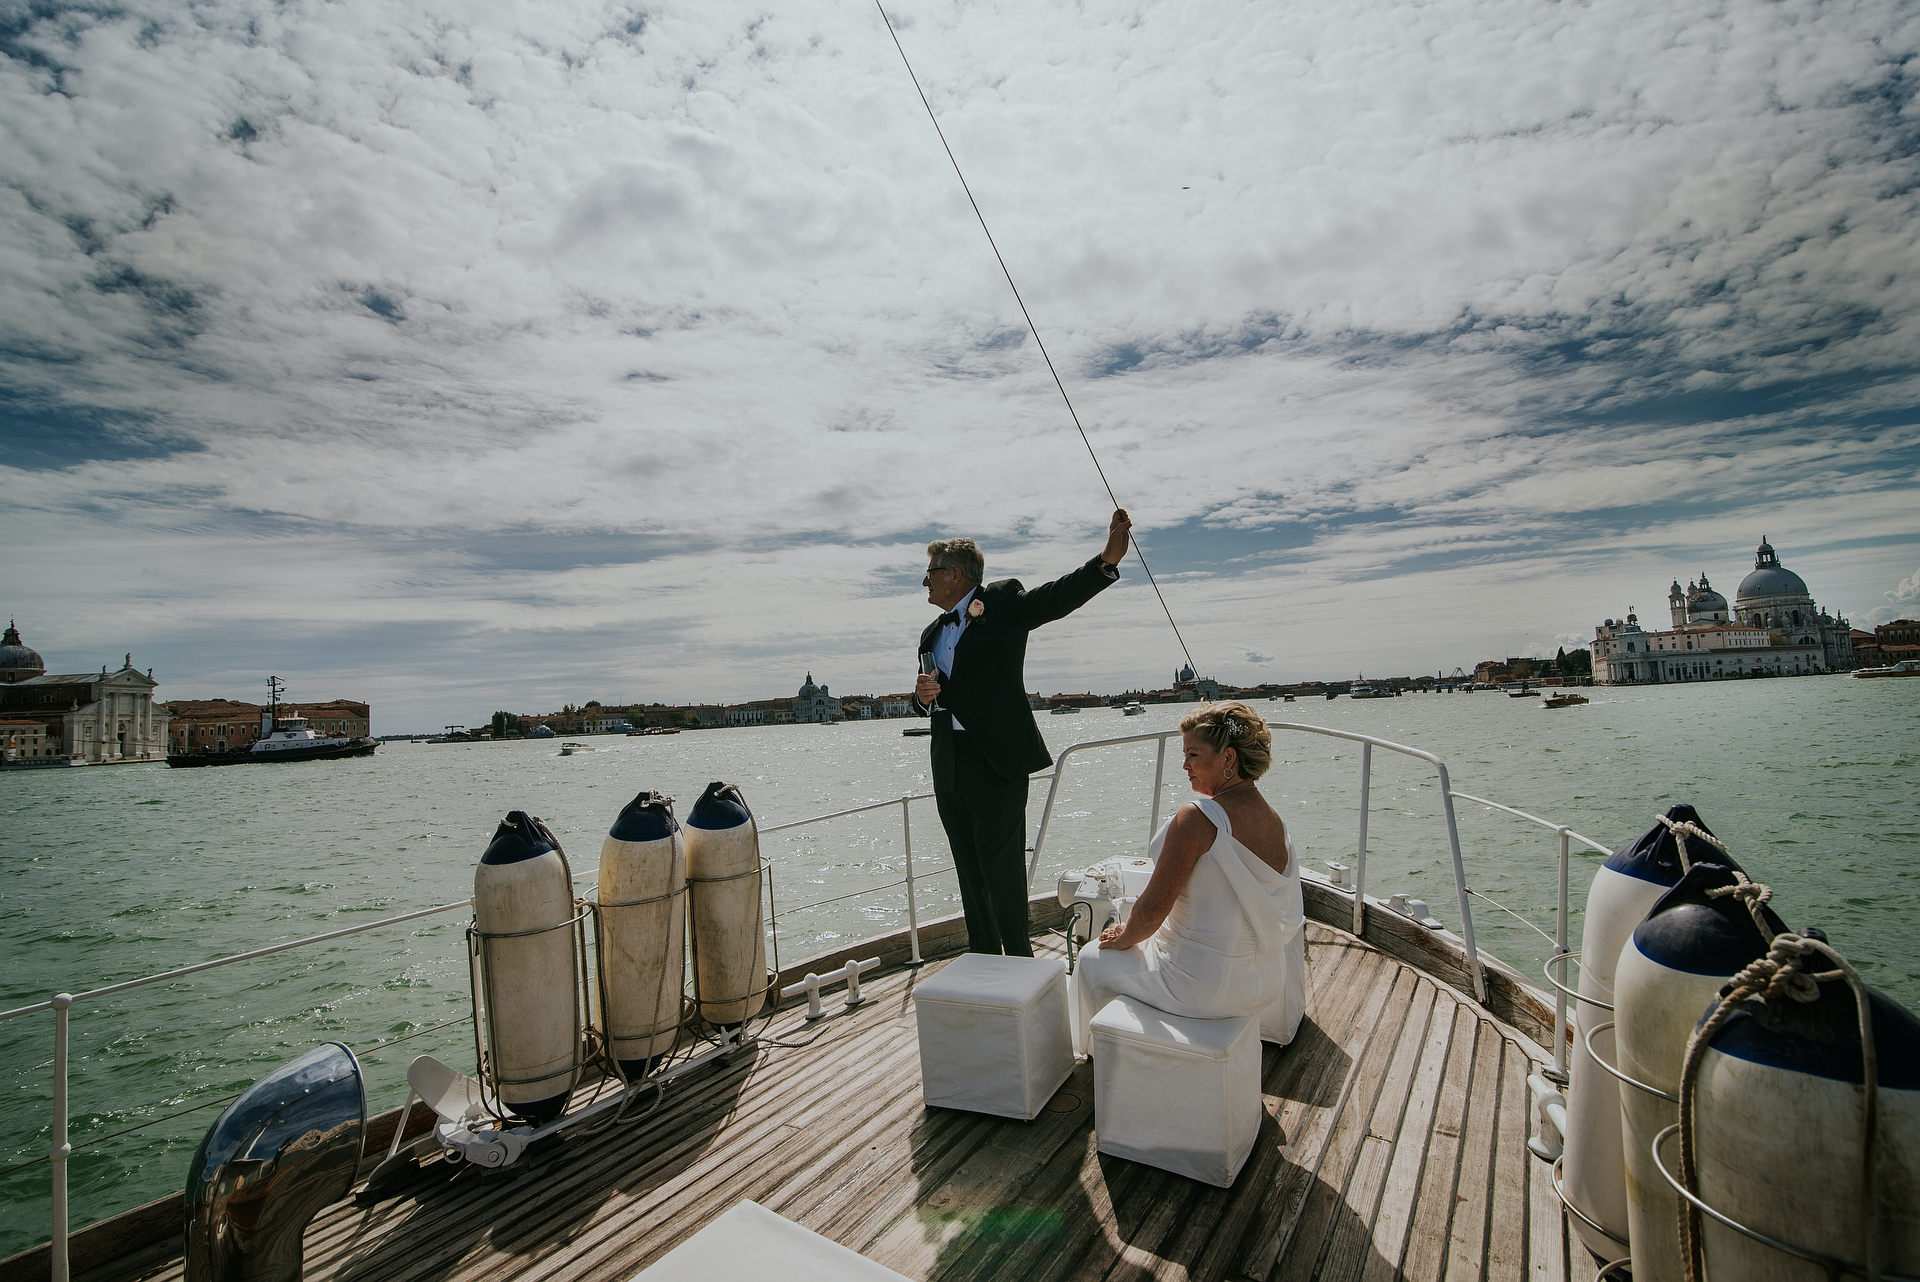 Venice Lagoon, Italy Boat Elopement Picture | sailing along the Venice lagoon, admiring the wonders of this place